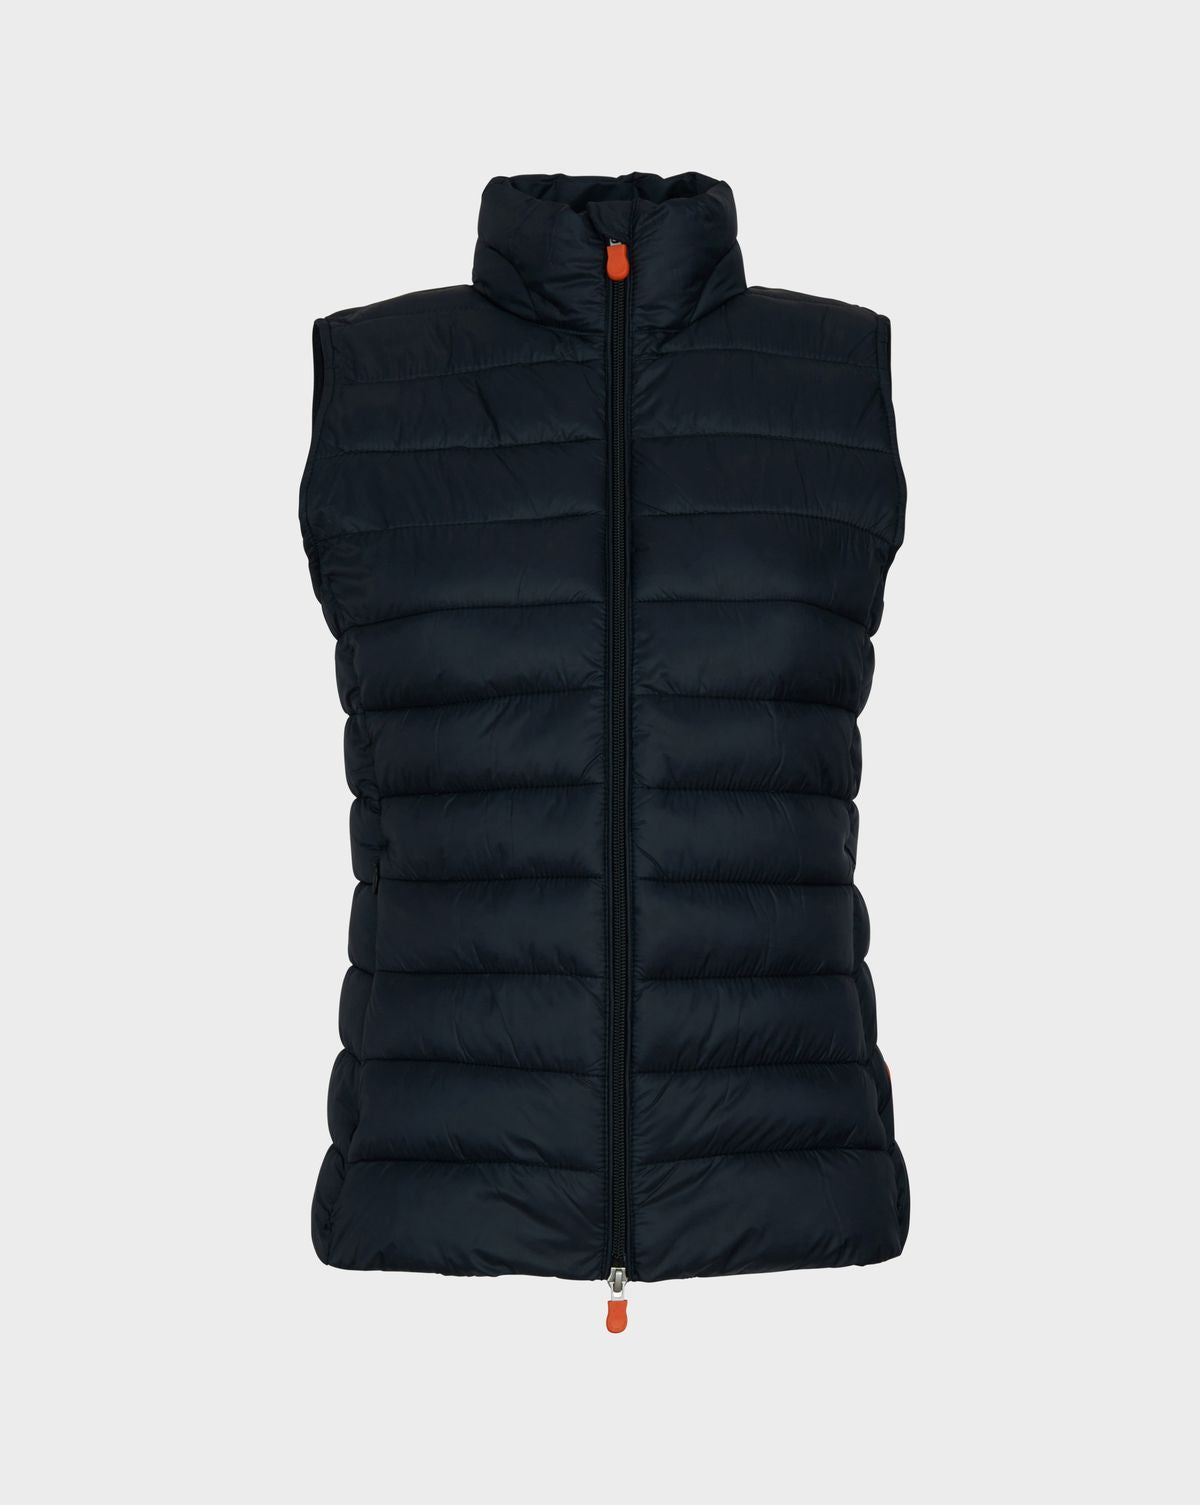 Save The Duck Womens Giga vest in Black - Luxe EQ